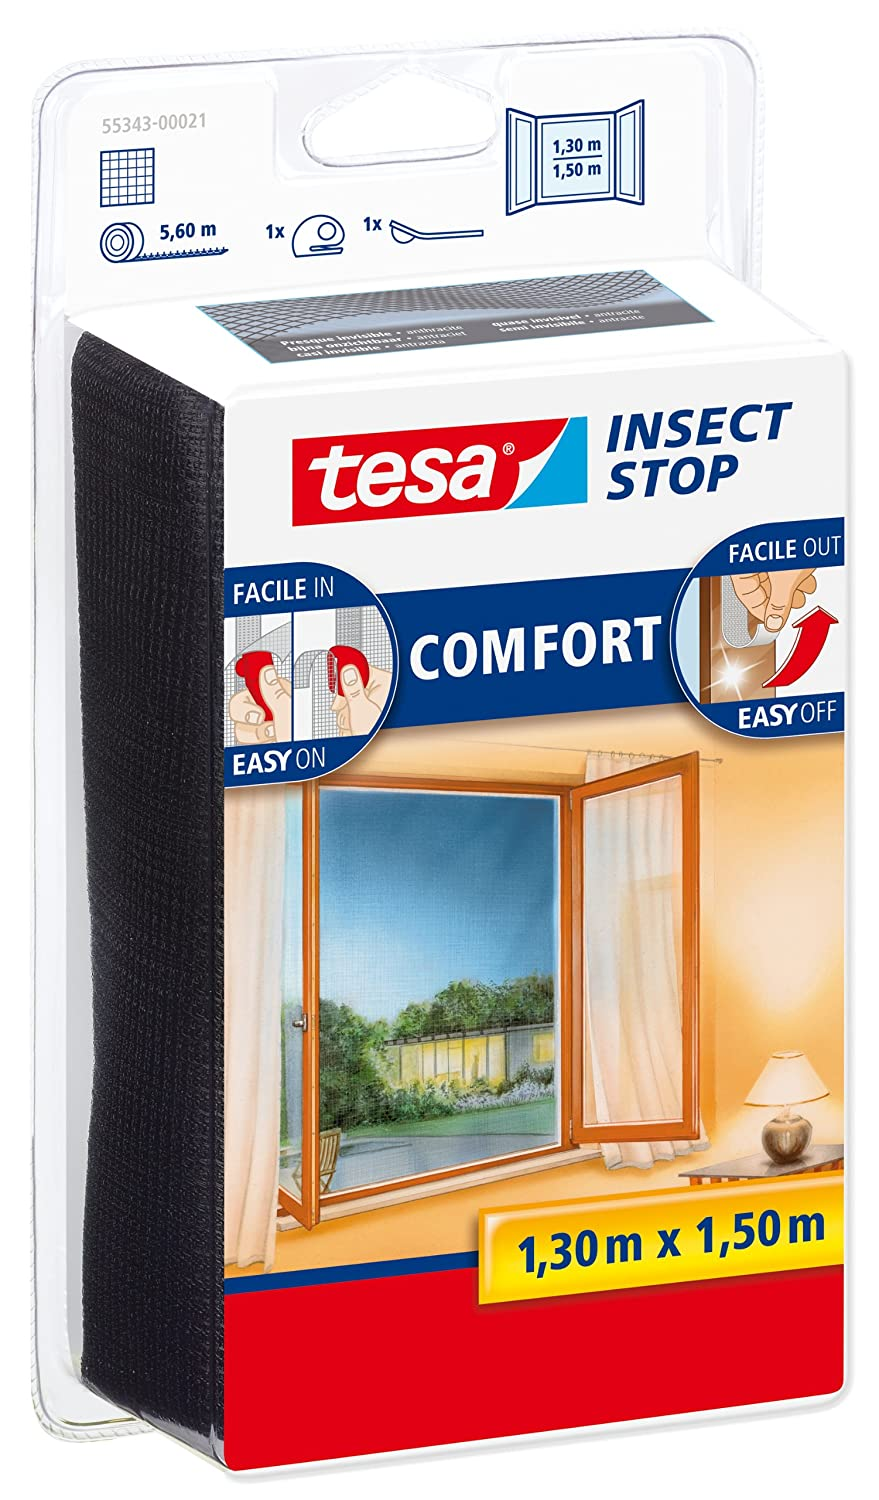 tesa Insect Stop Comfort 55915-00021-00 Mosquito Net for Windows